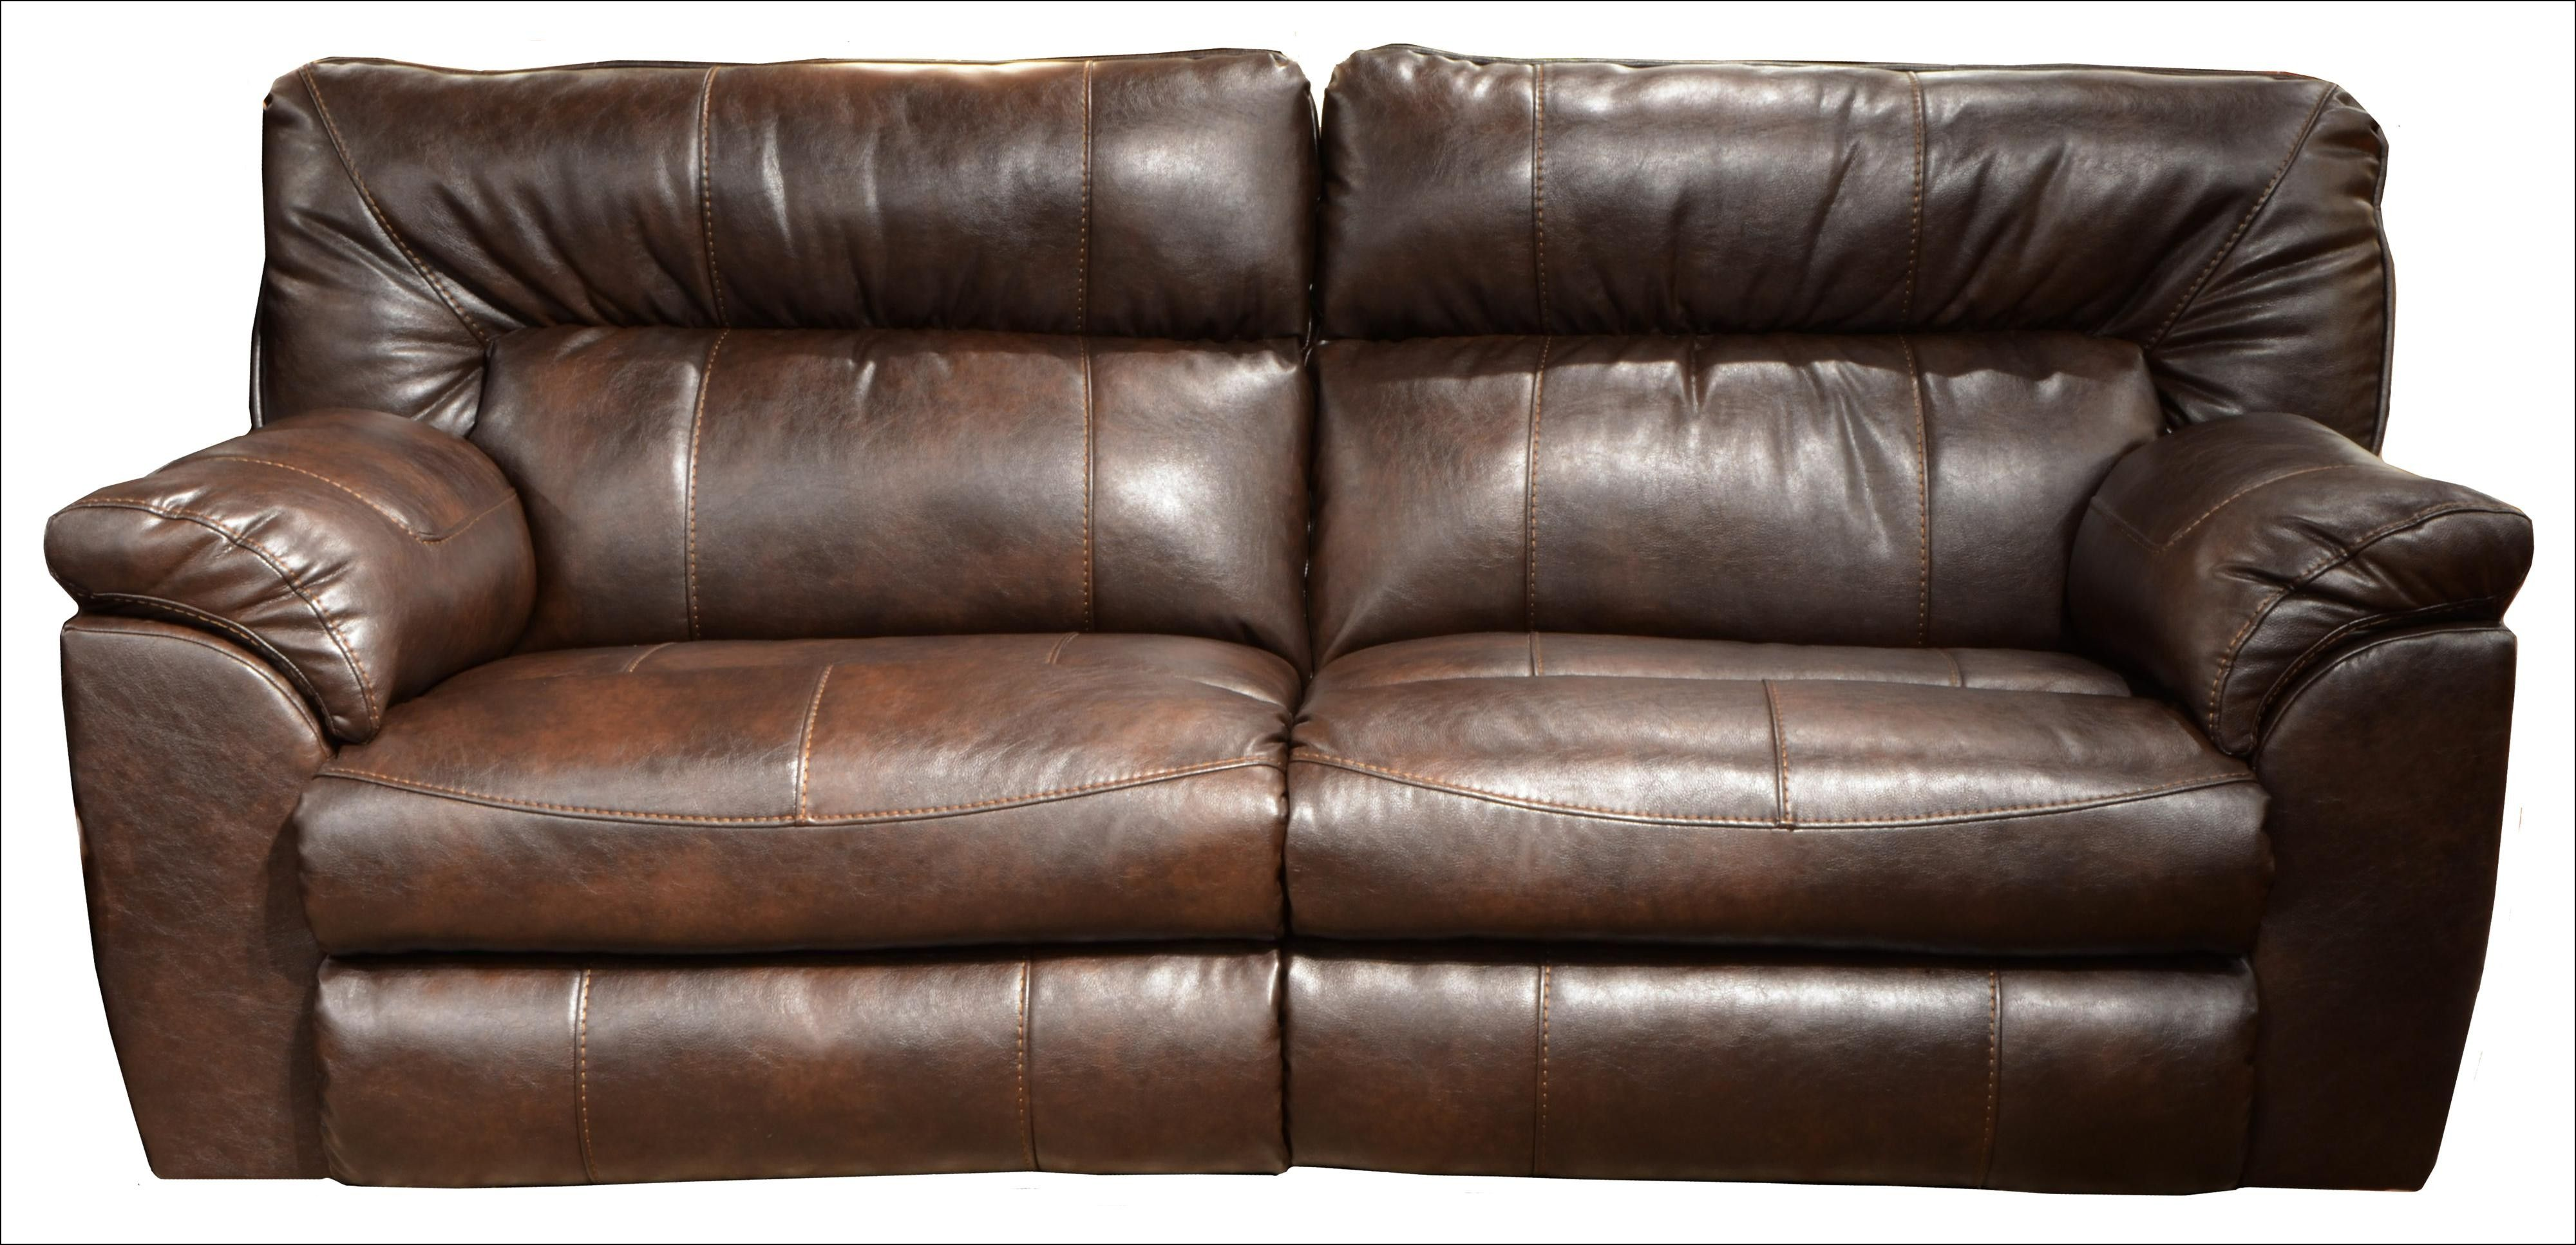 Catnapper leather reclining sofa couch u sofa gallery pinterest